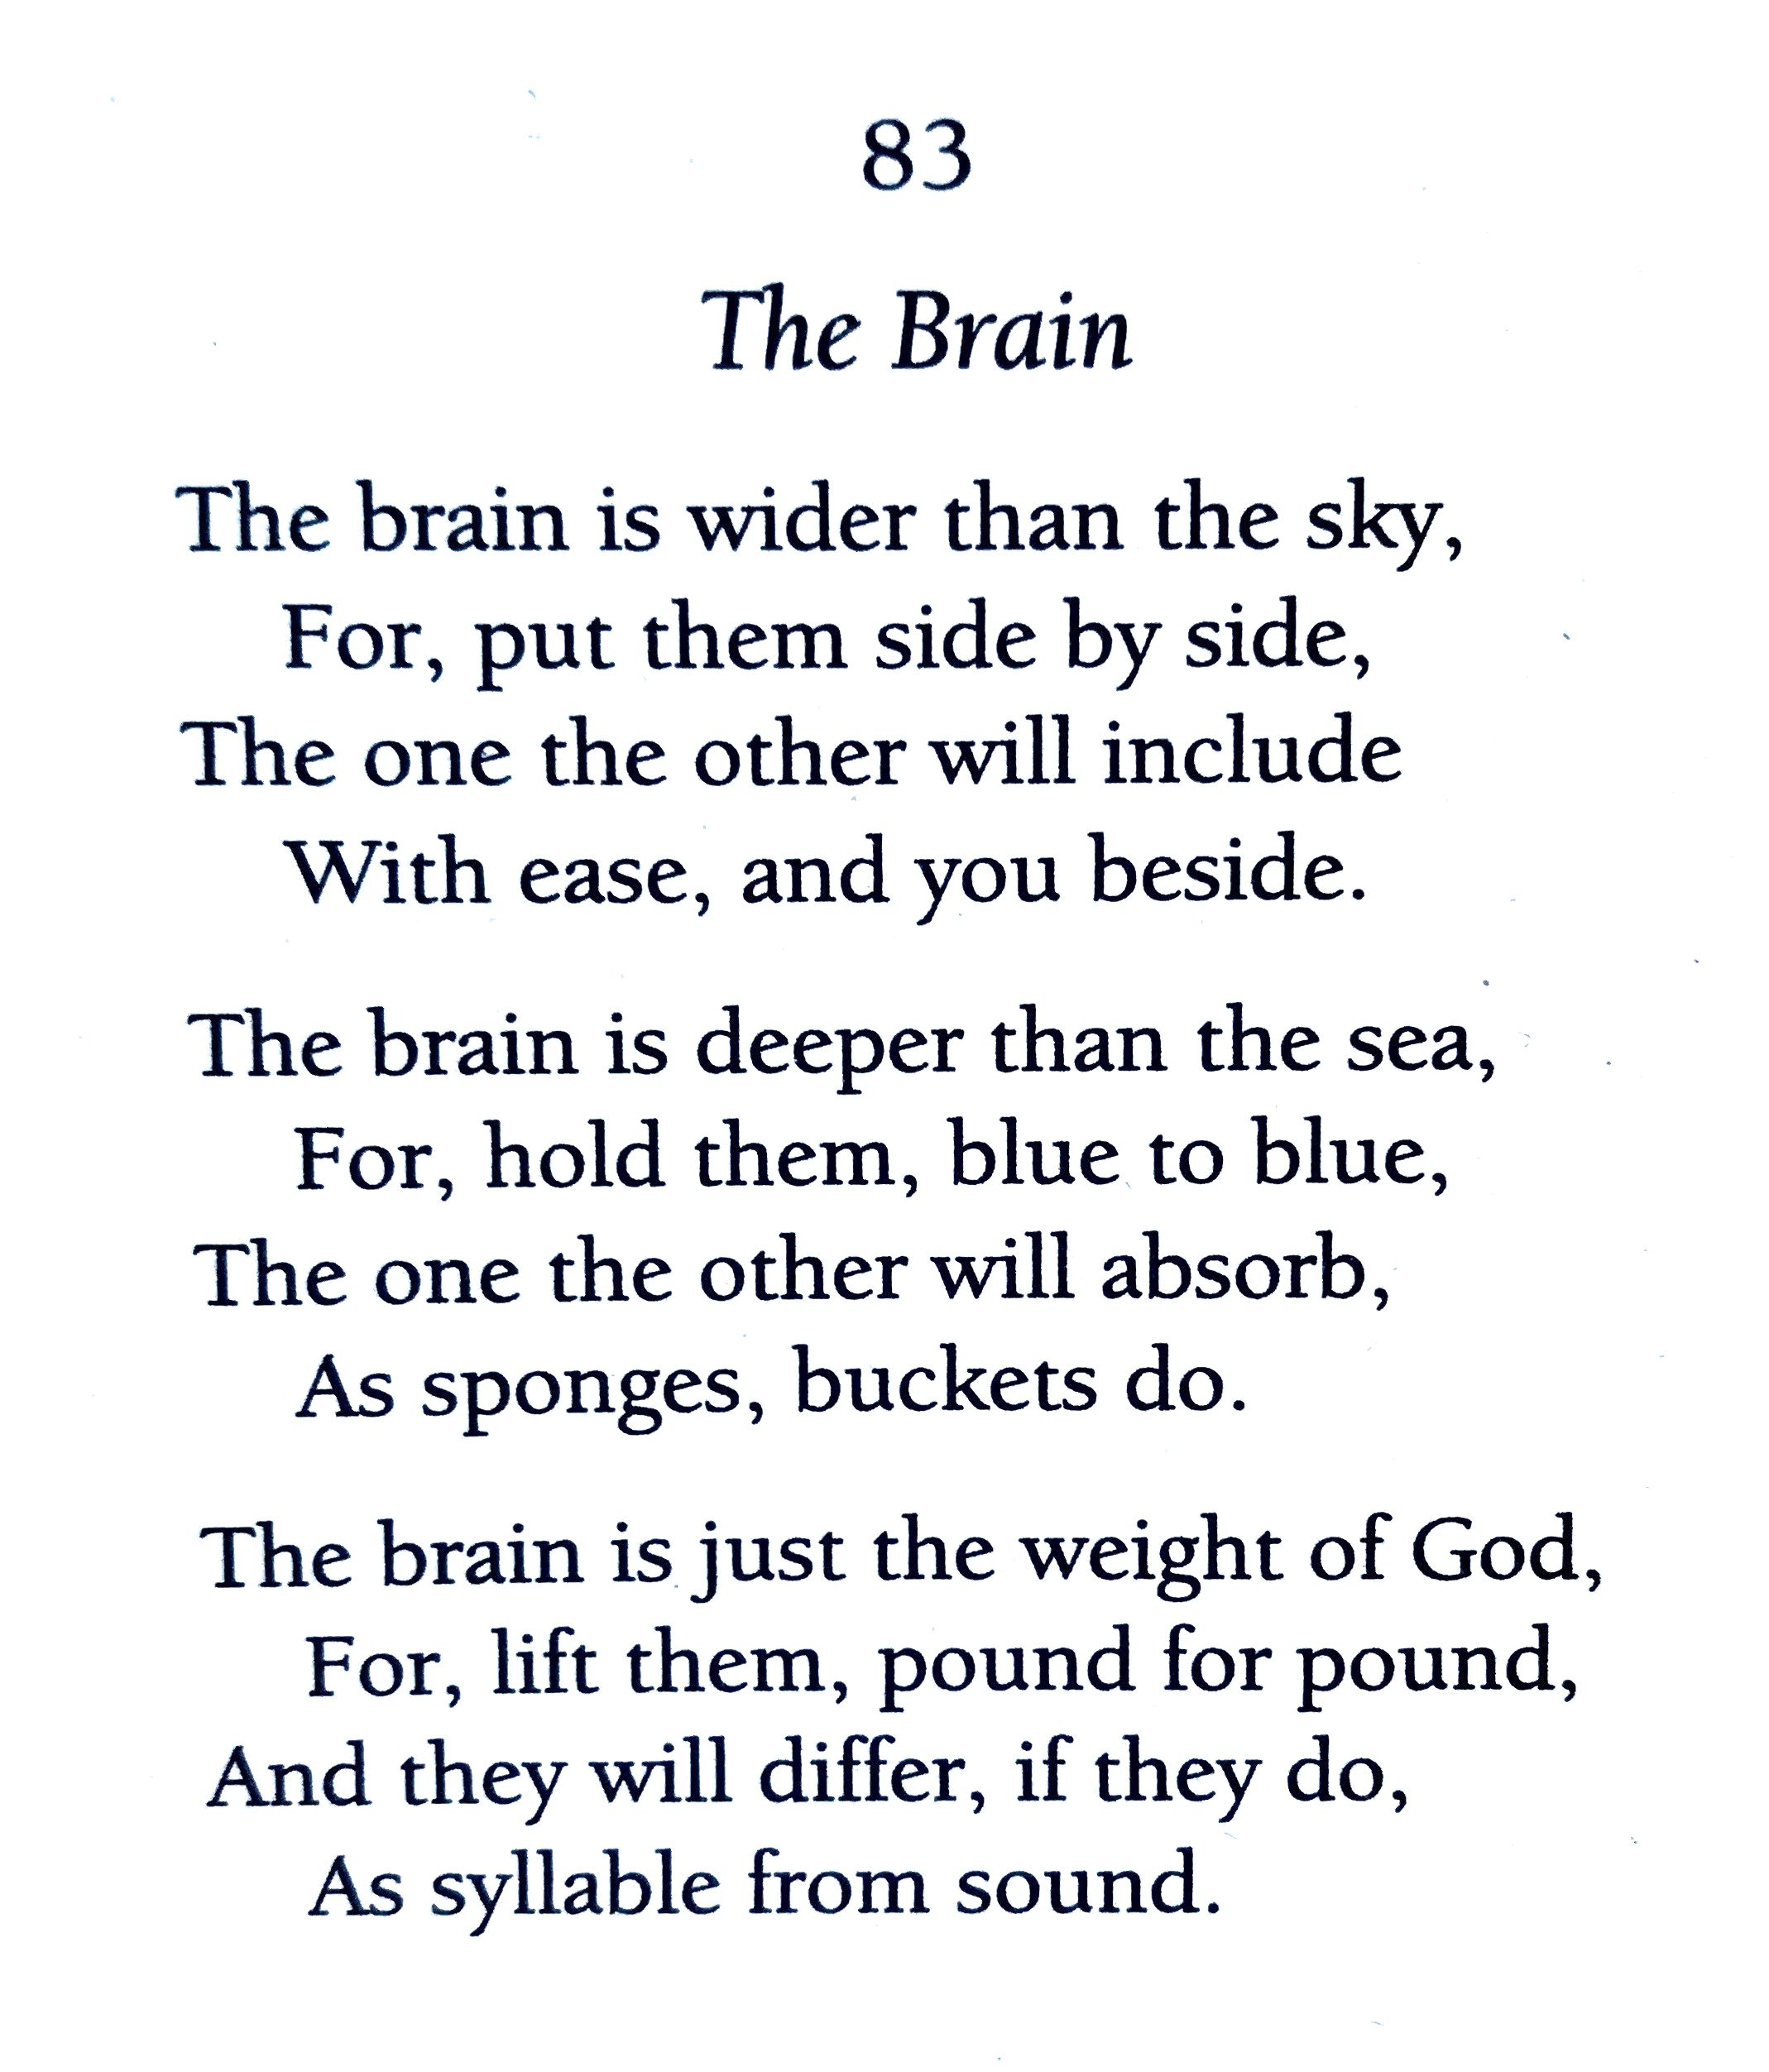 Emily Dickinson The Brain Poem Quotes Because I Could Not Stop For Death Paraphrase